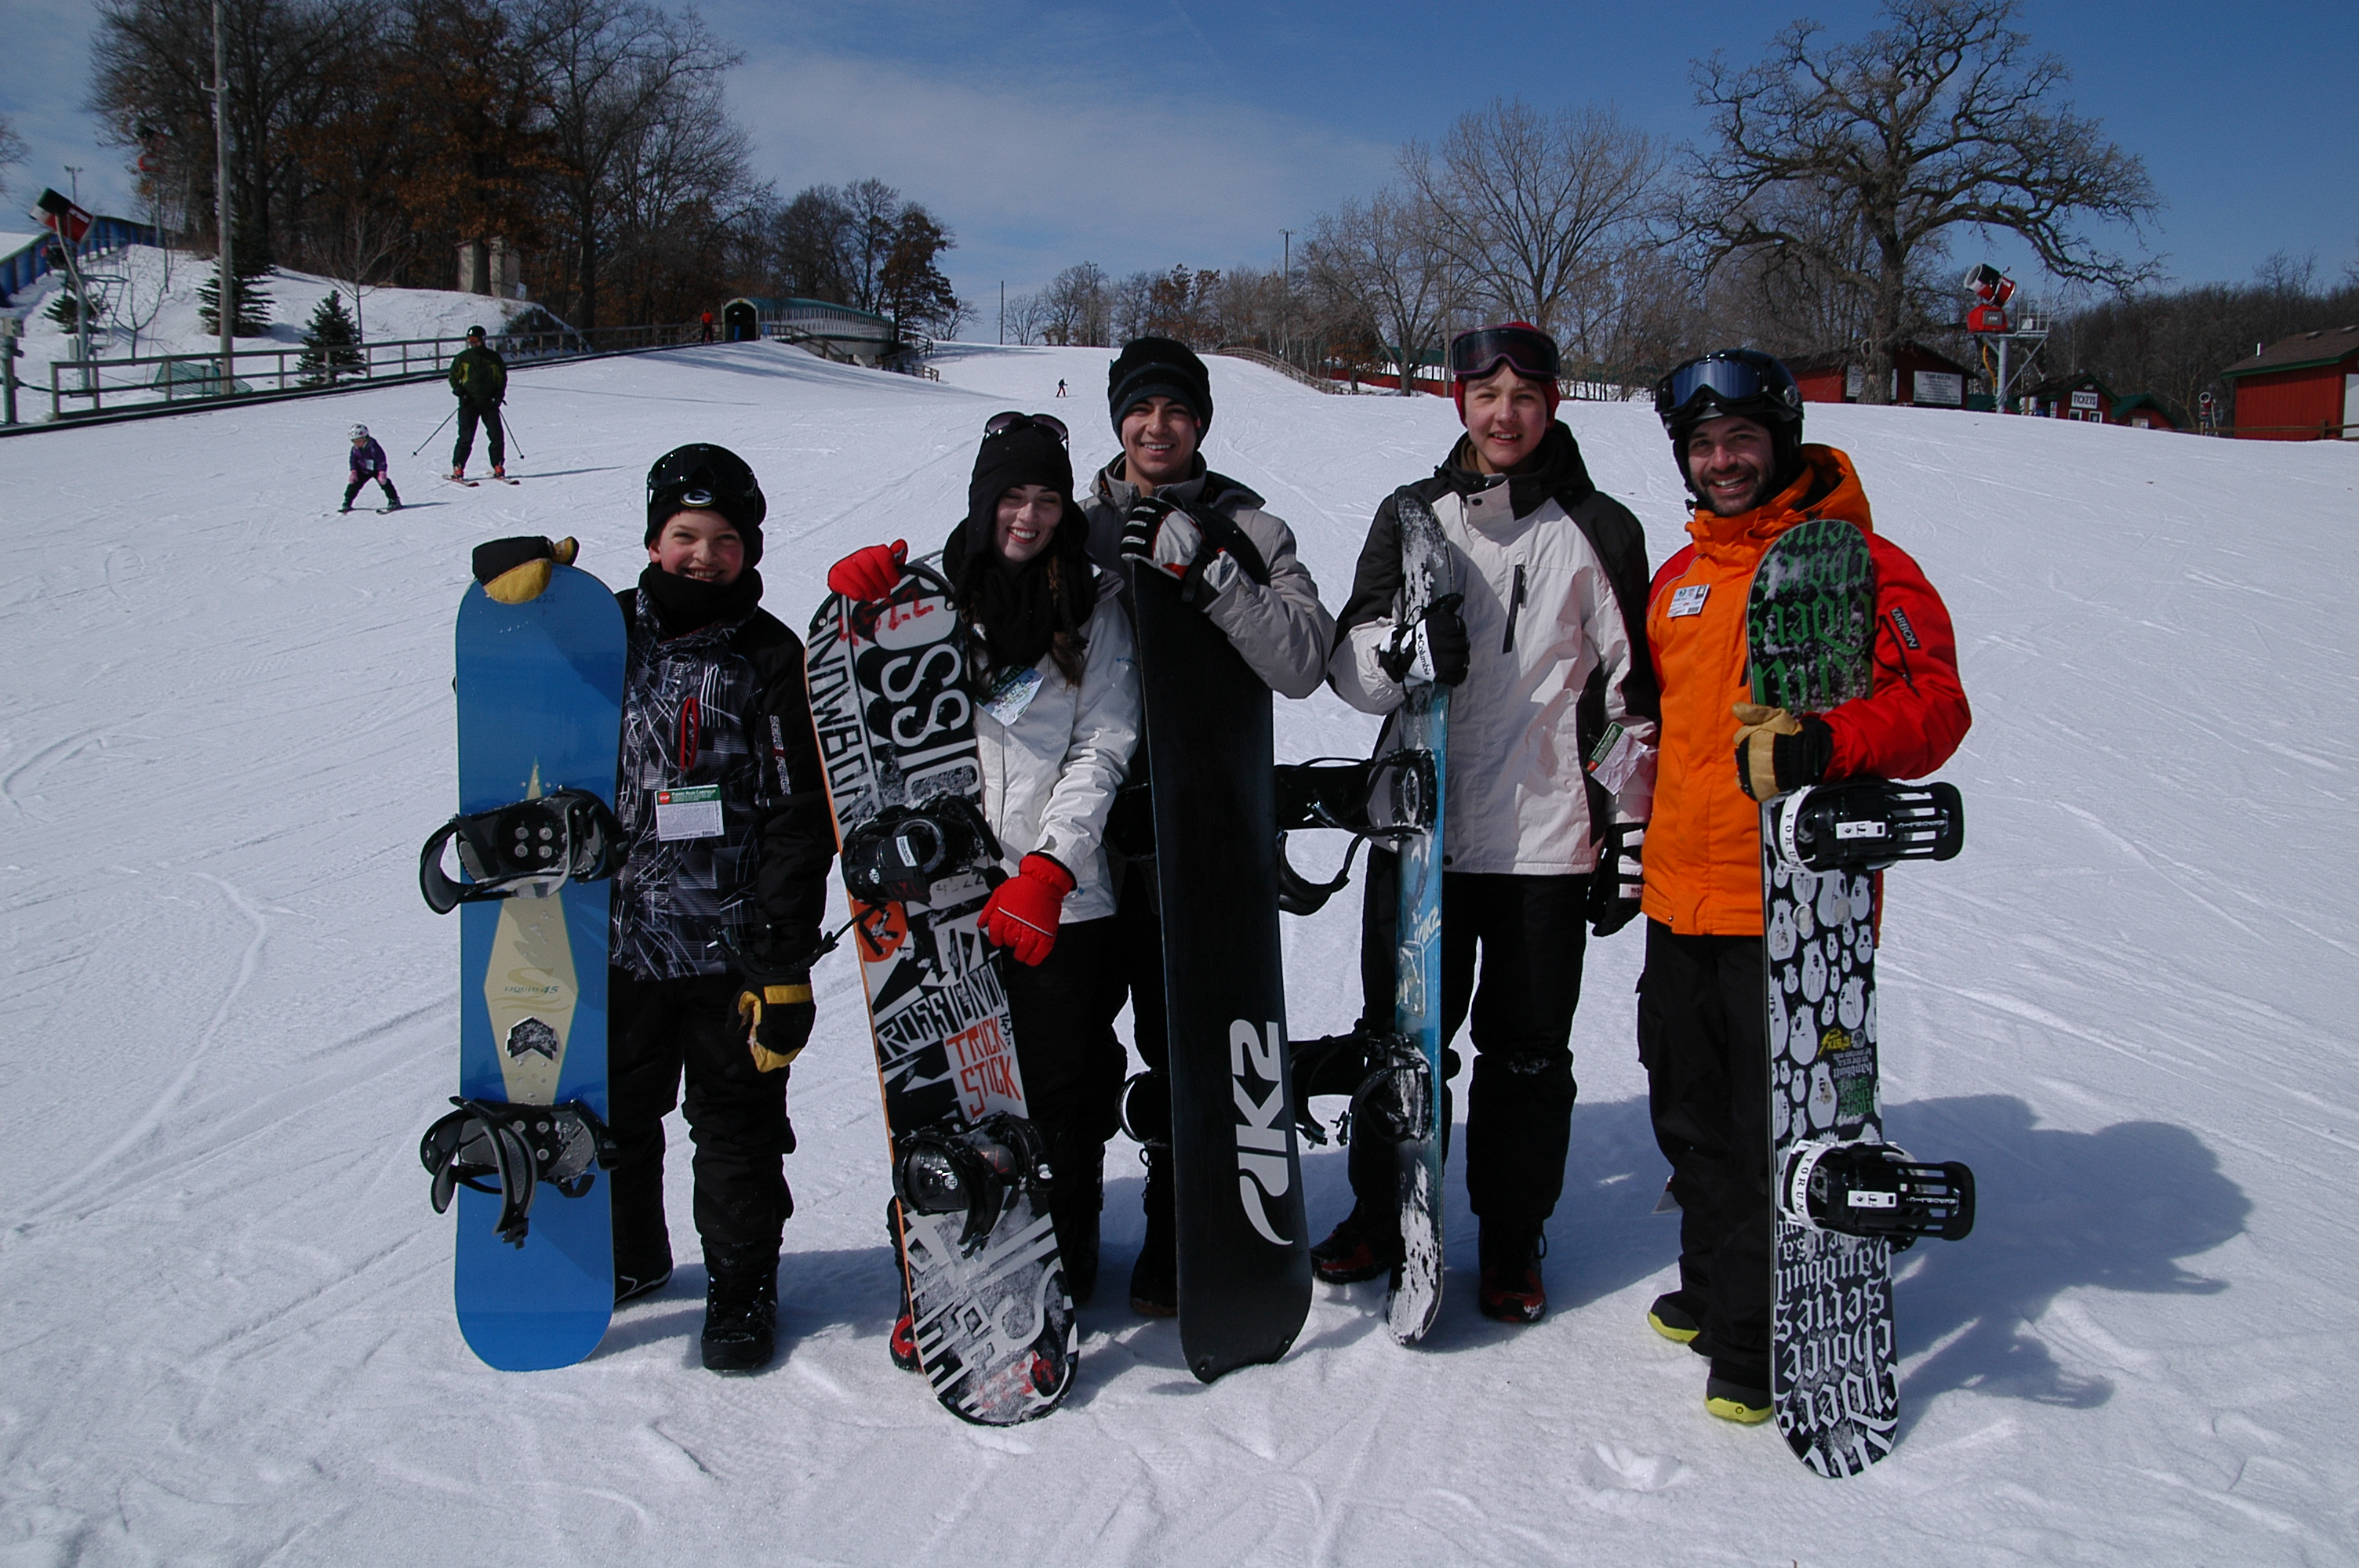 Snowboarders at buck hill